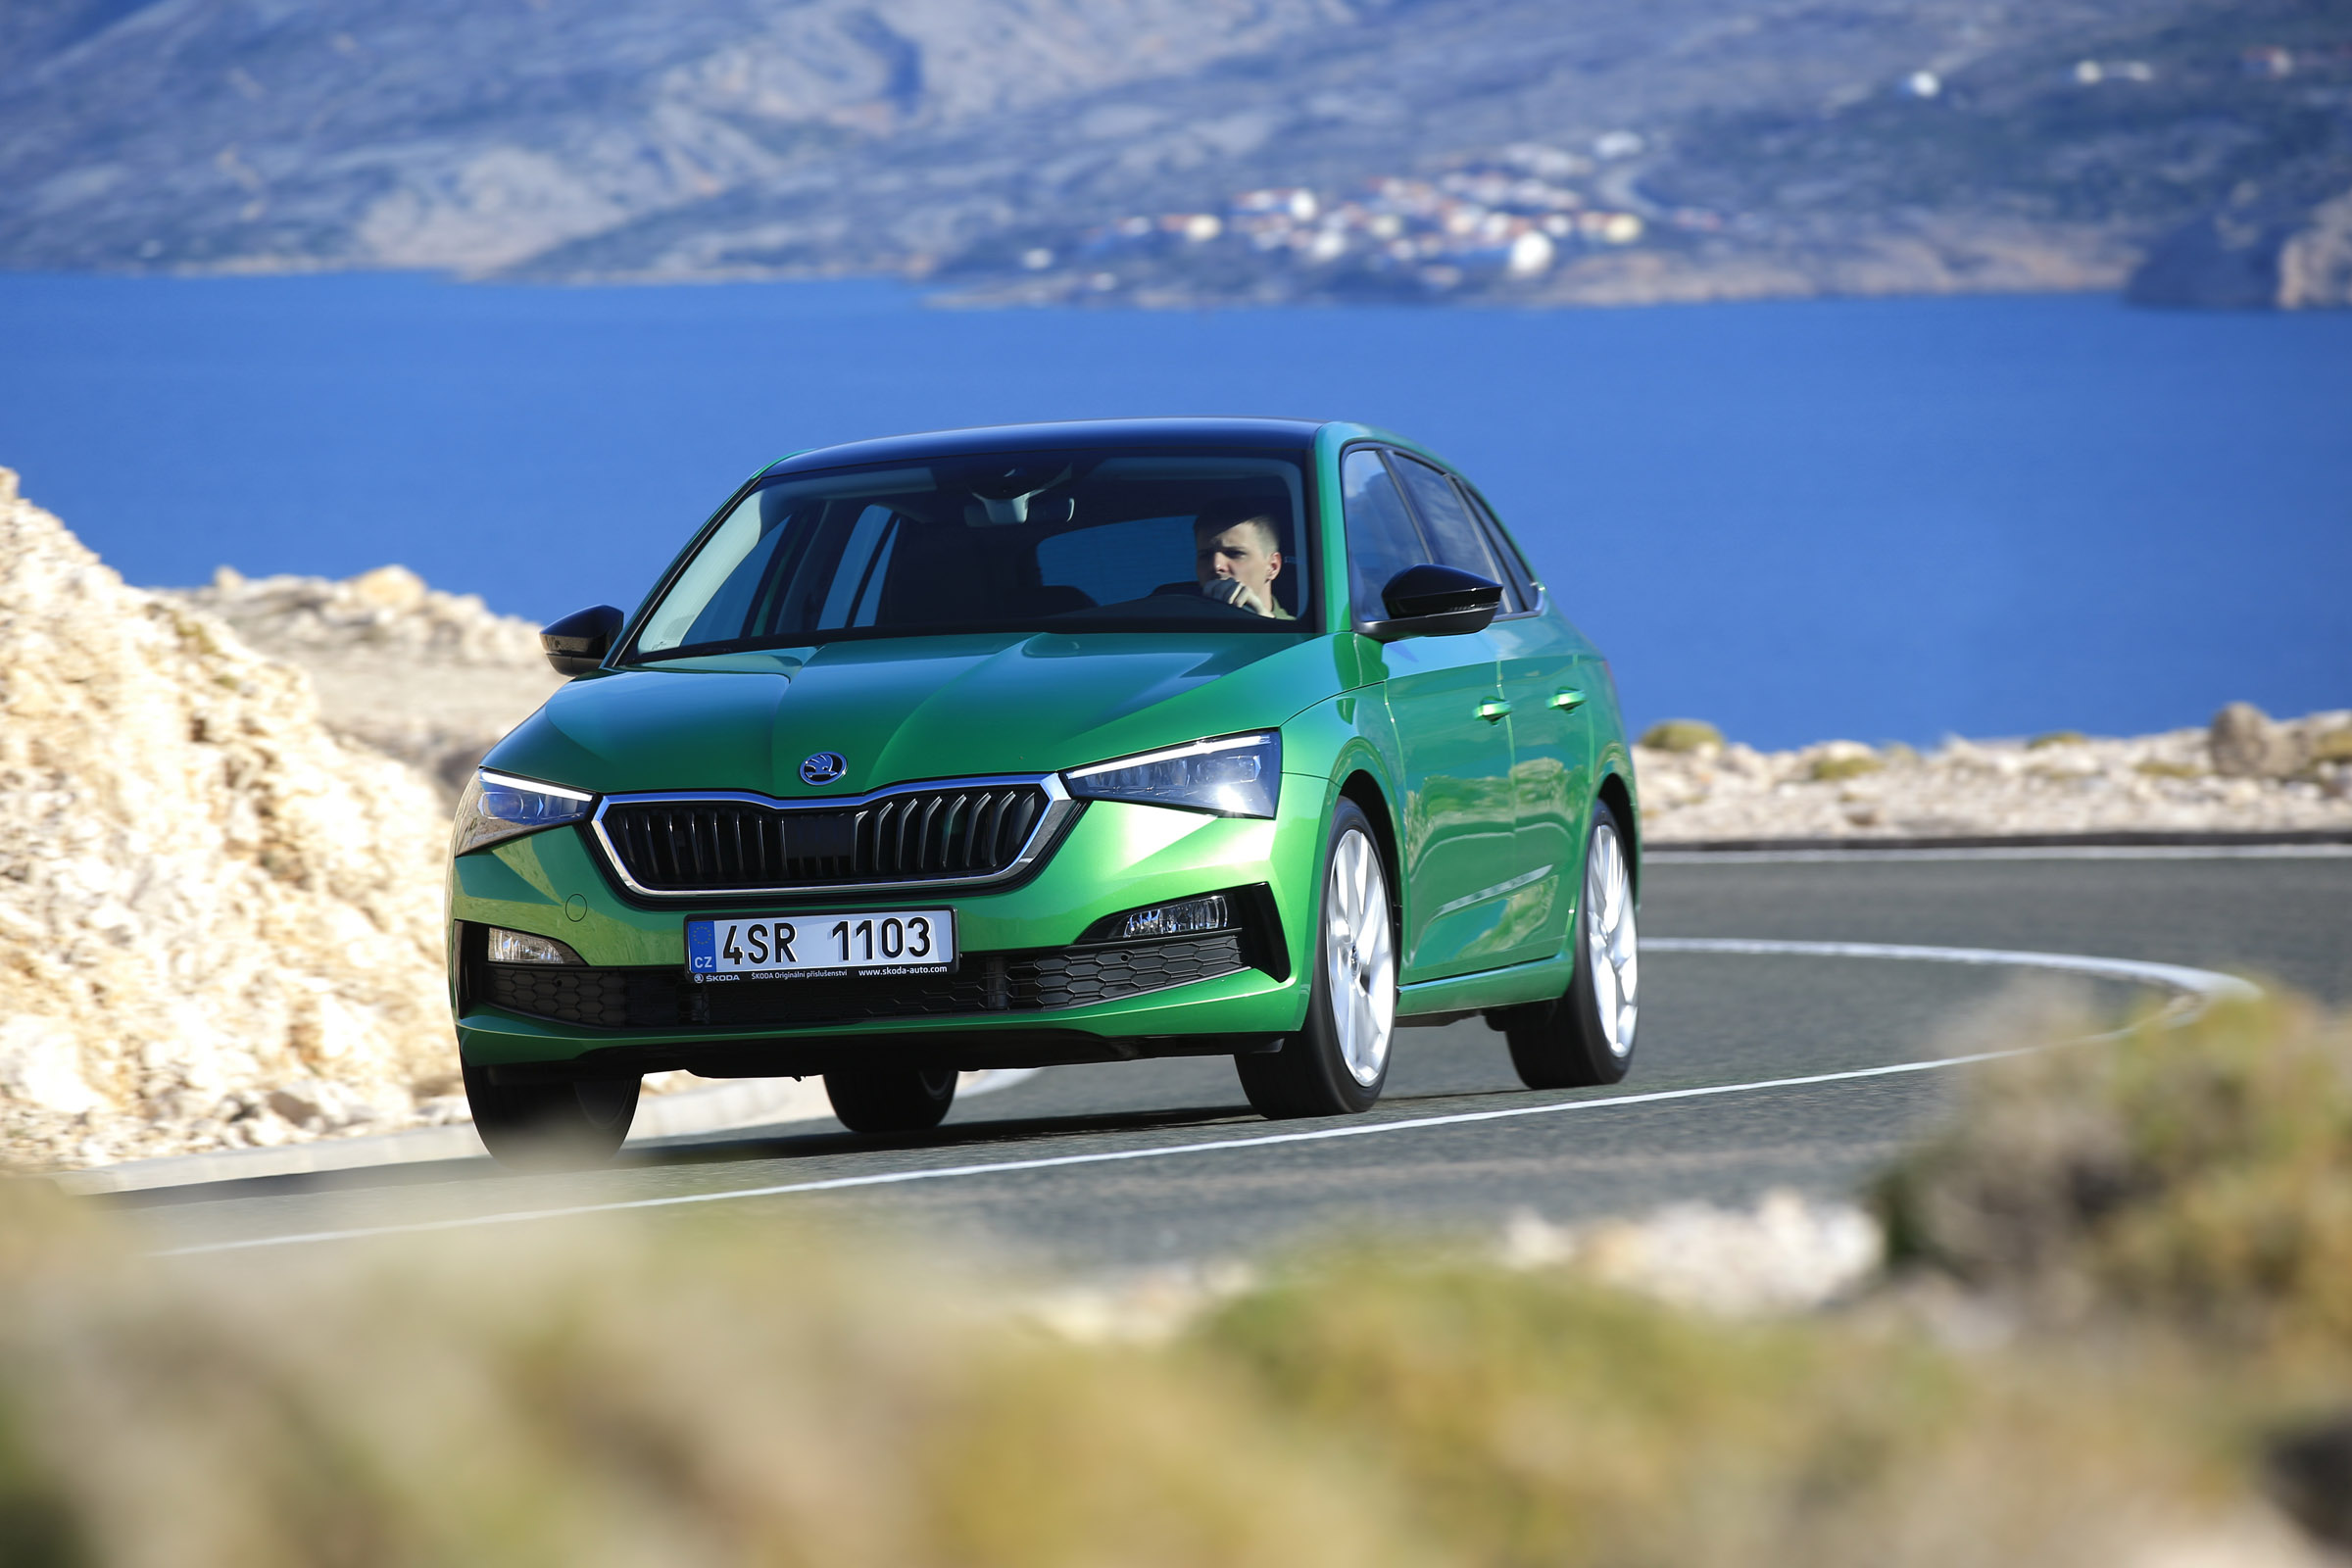 New Skoda Scala 2019 Review Middleweight Hatch Targets Ford Focus And Vw Golf Evo